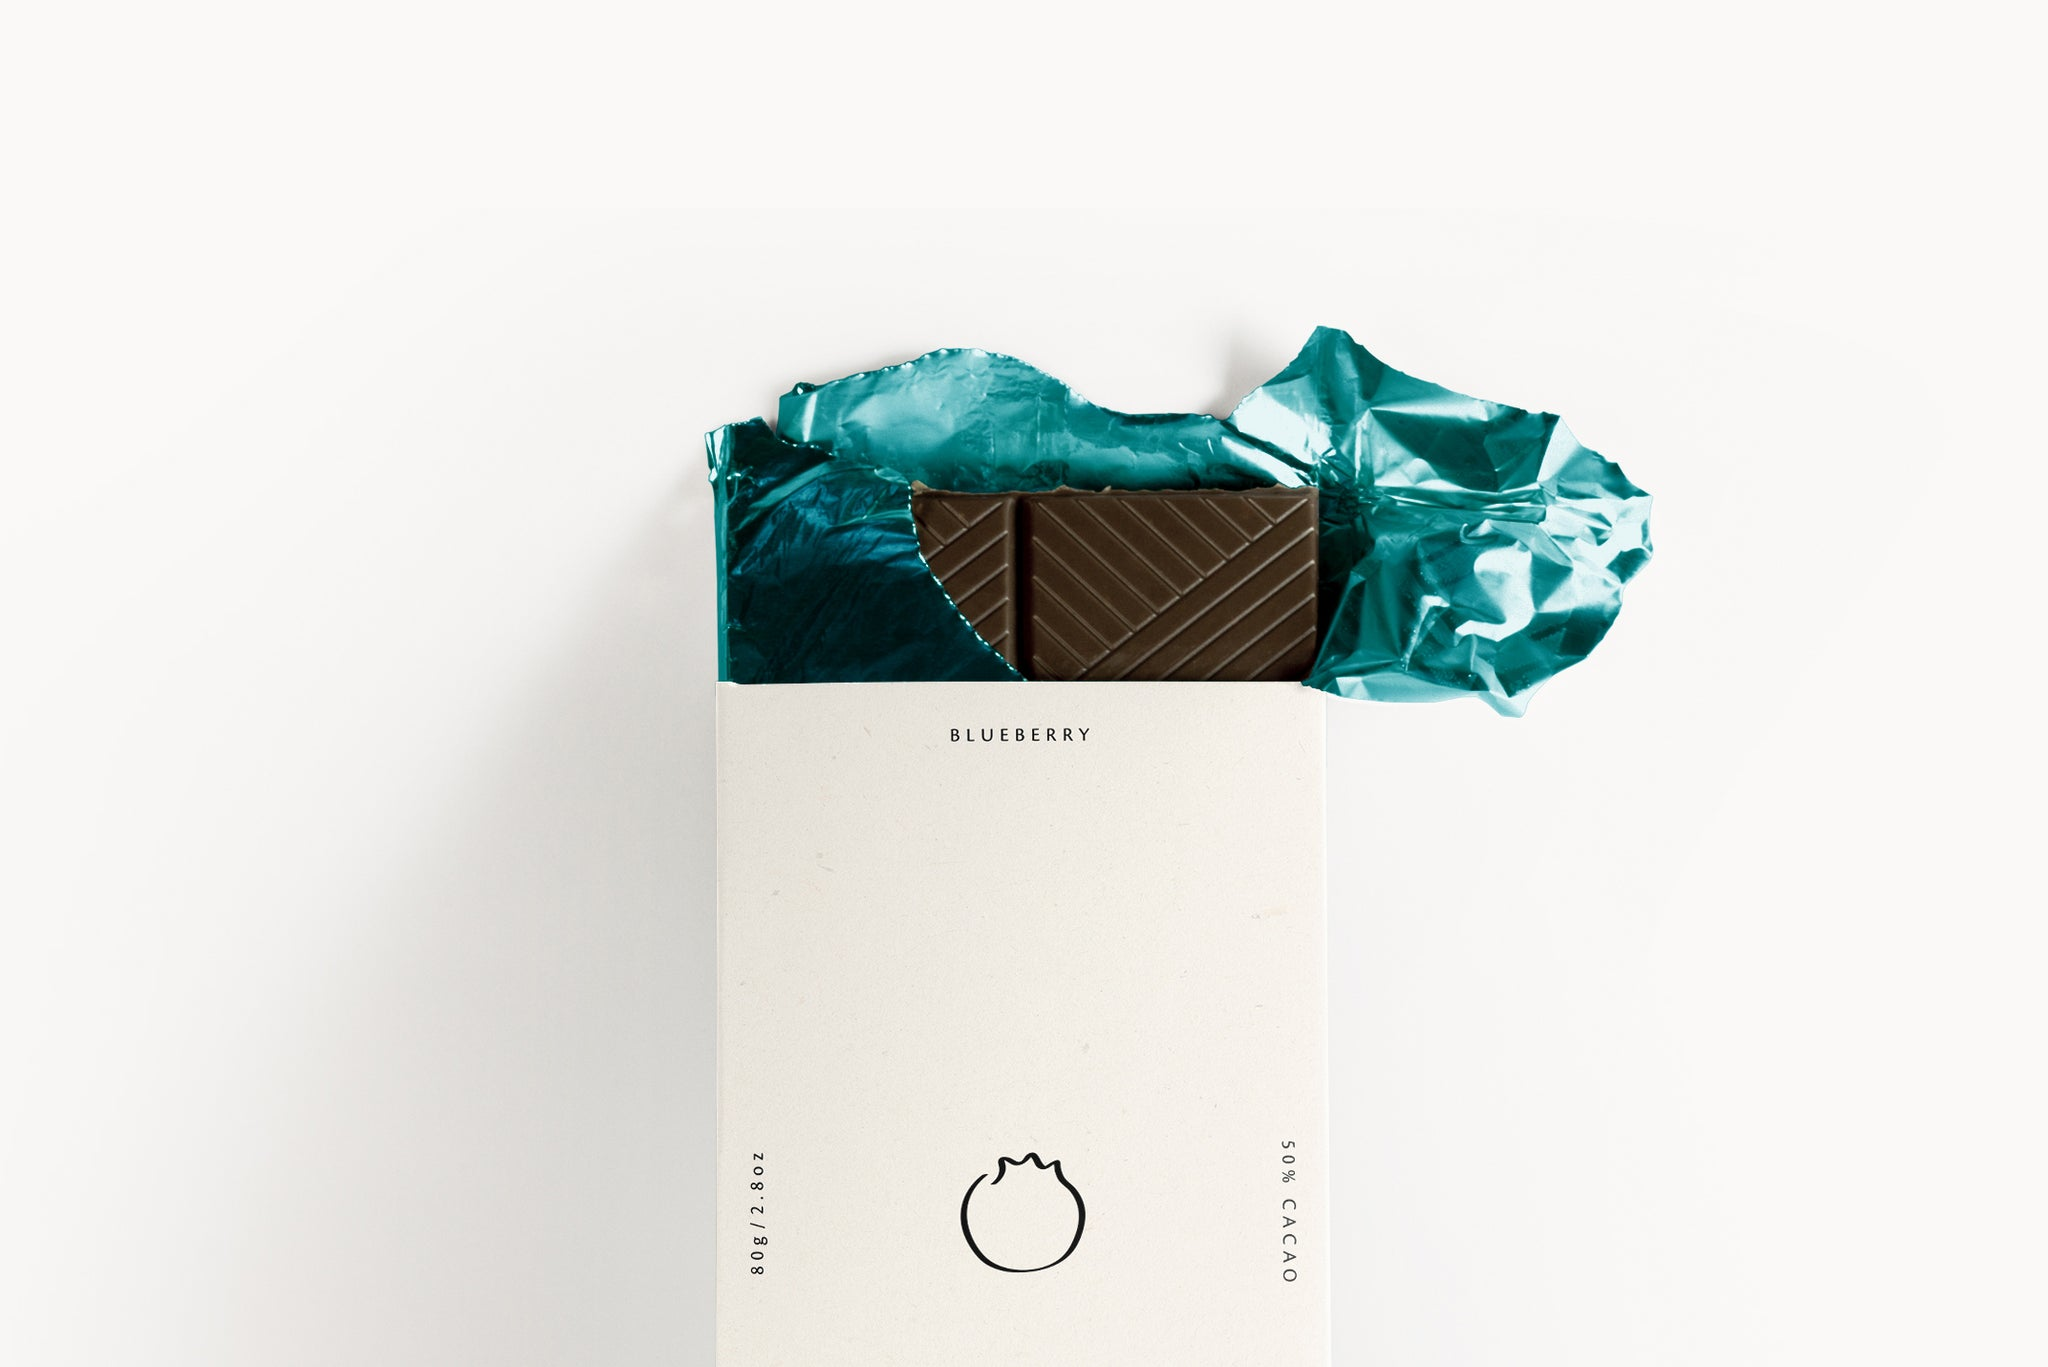 Inspiring minimalist packaging